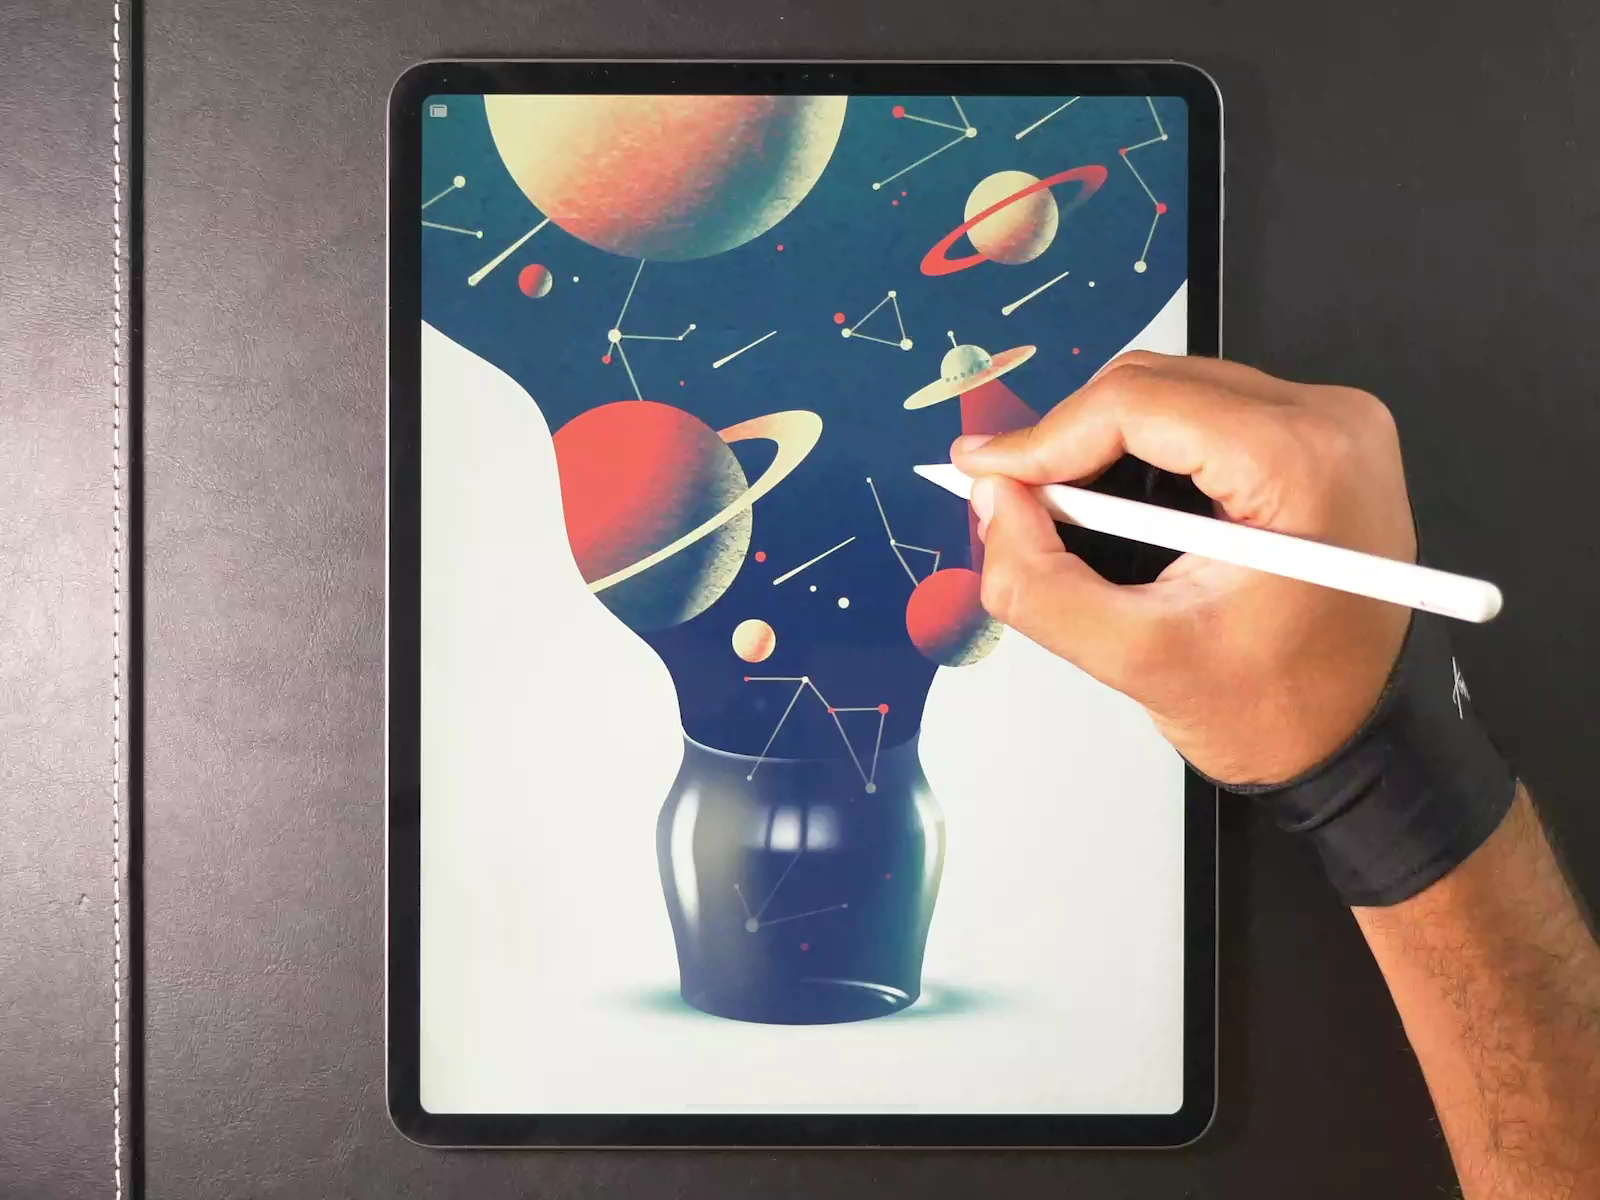 Galaxy Jar - Procreate Drawing | Digital Painting by Gal Shir | CLICK THE LINK FOR THE FULL PROCESS